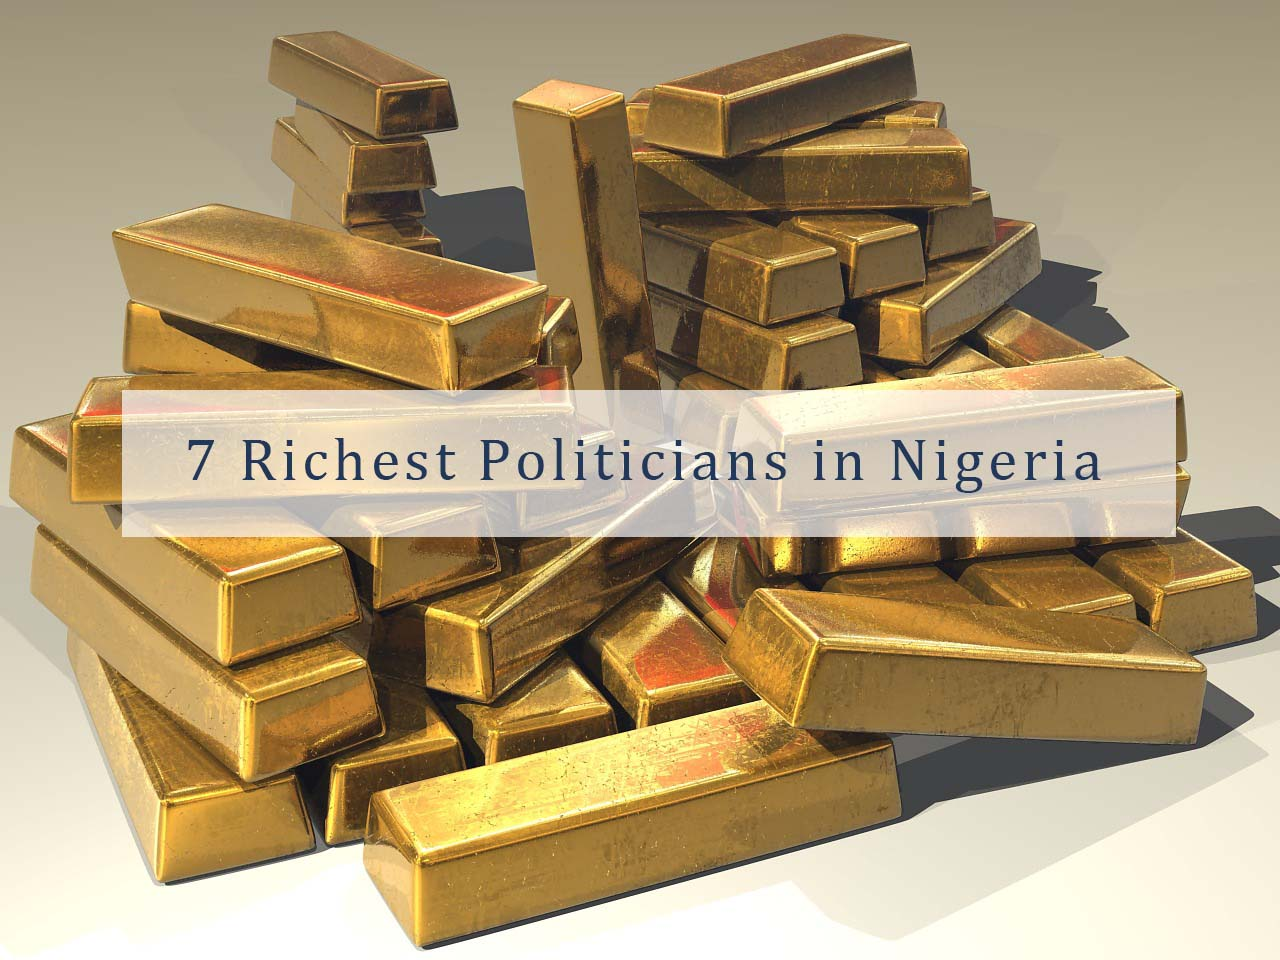 Gold bars for politicians in Nigeria